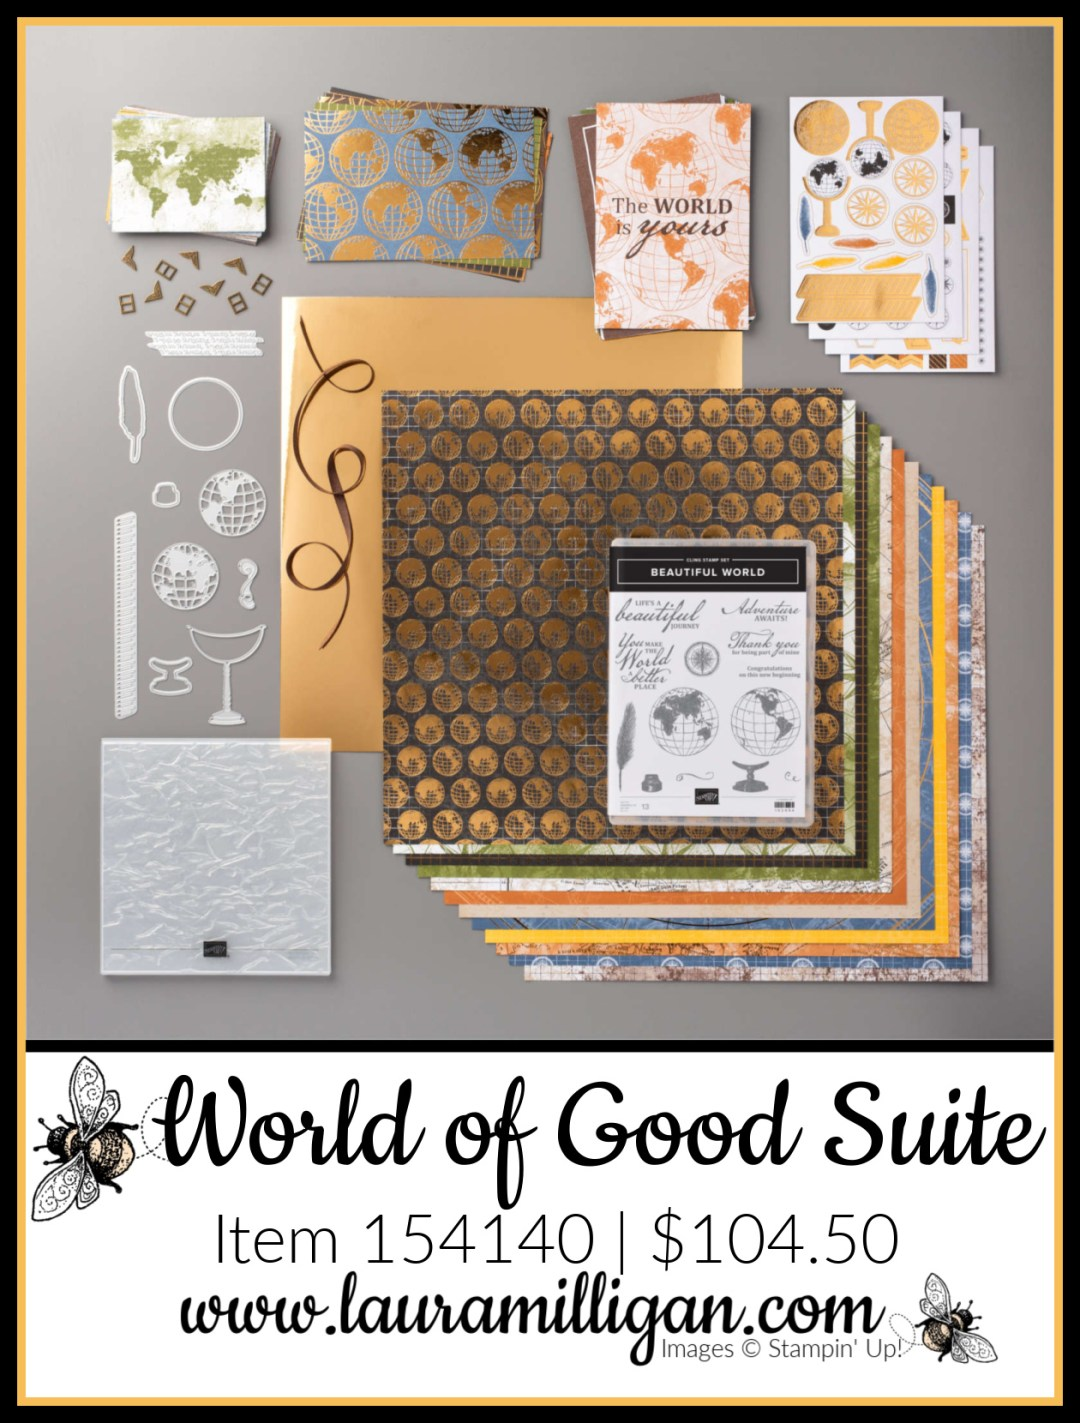 World of Good Suite from Stampin' Up! Item 154140